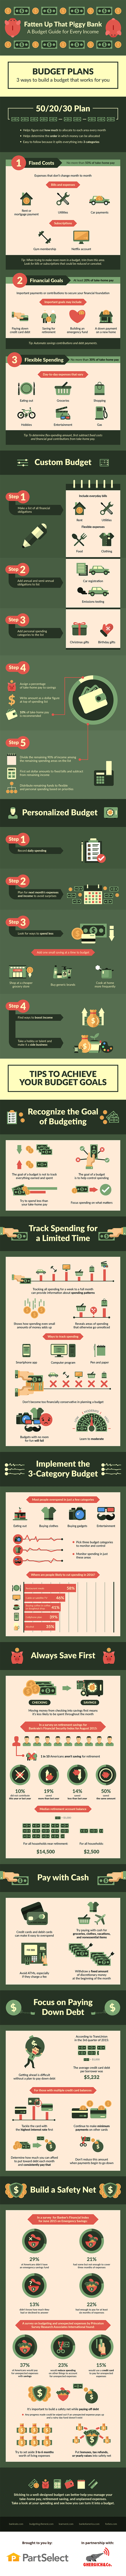 Planning the Monthly Household Budget: Modern 'Piggy Bank' Methods - Infographic